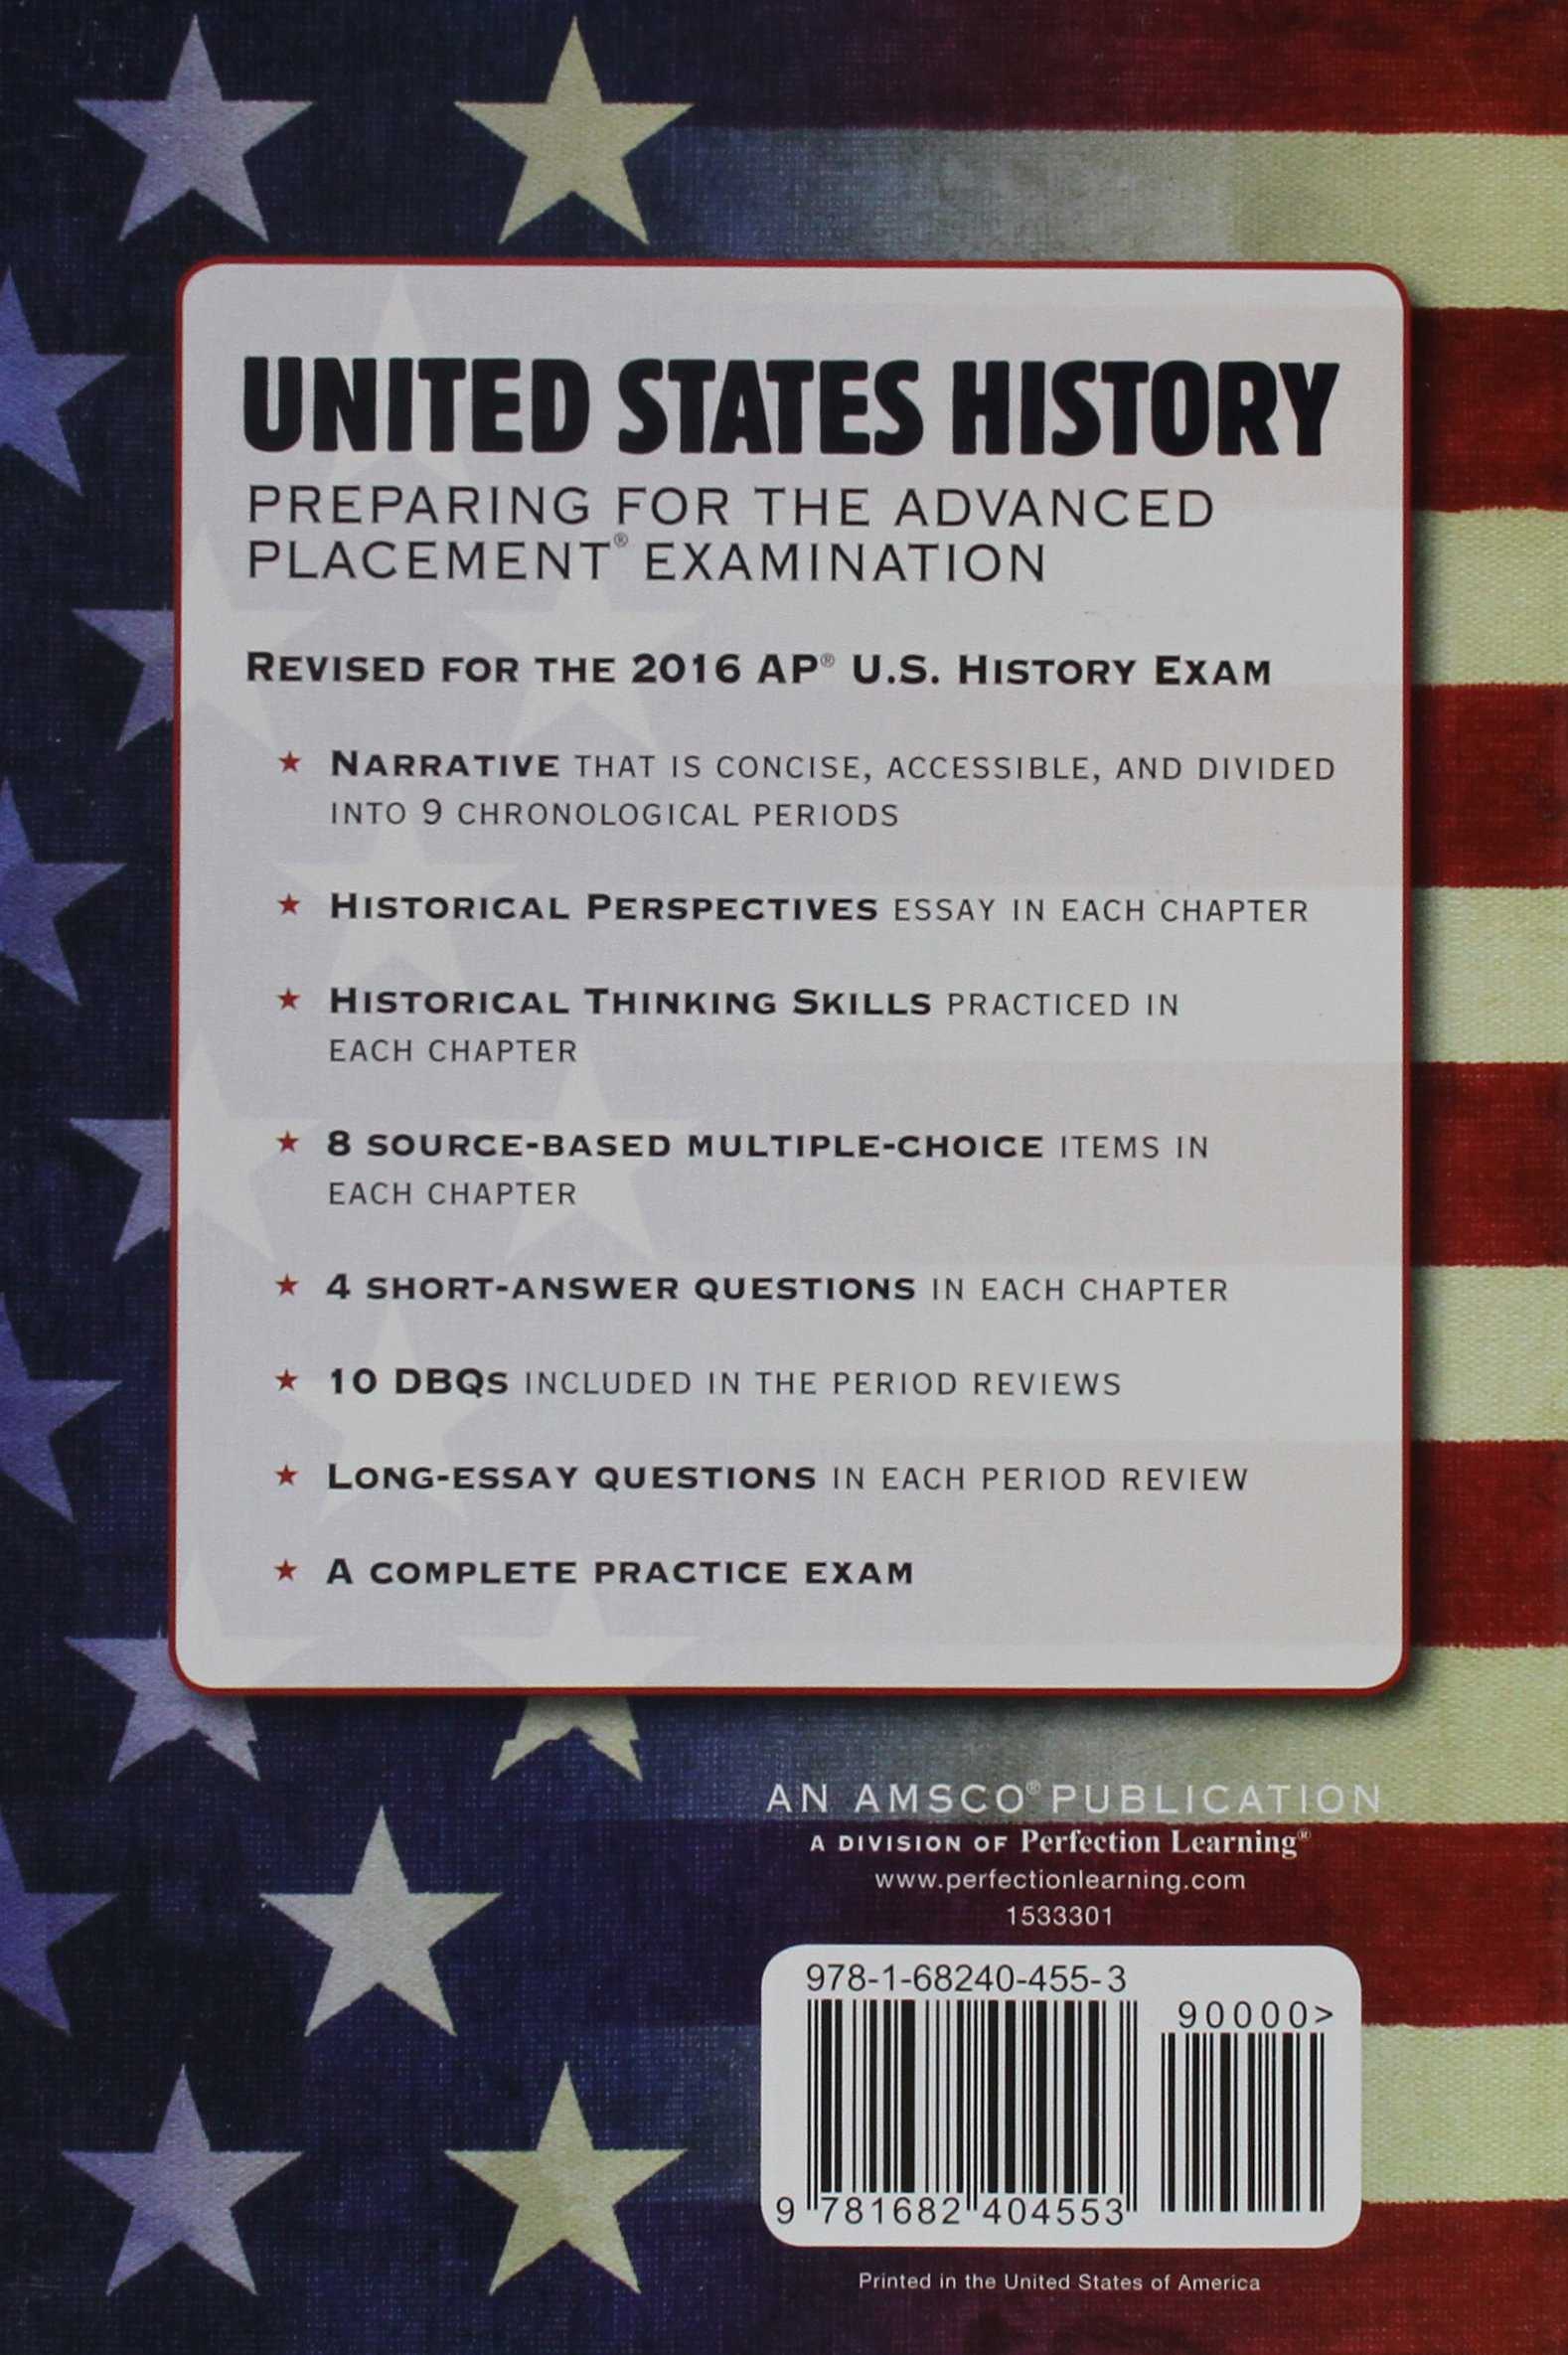 ap us history progressive era The progressives were mostly middle class people interested in middle class issues, reform of government, a progressive income tax, conservation, anti-trust actions, etc some issues did actually benefit the poor (child labor laws, food and drug act), but that was not their main interest.